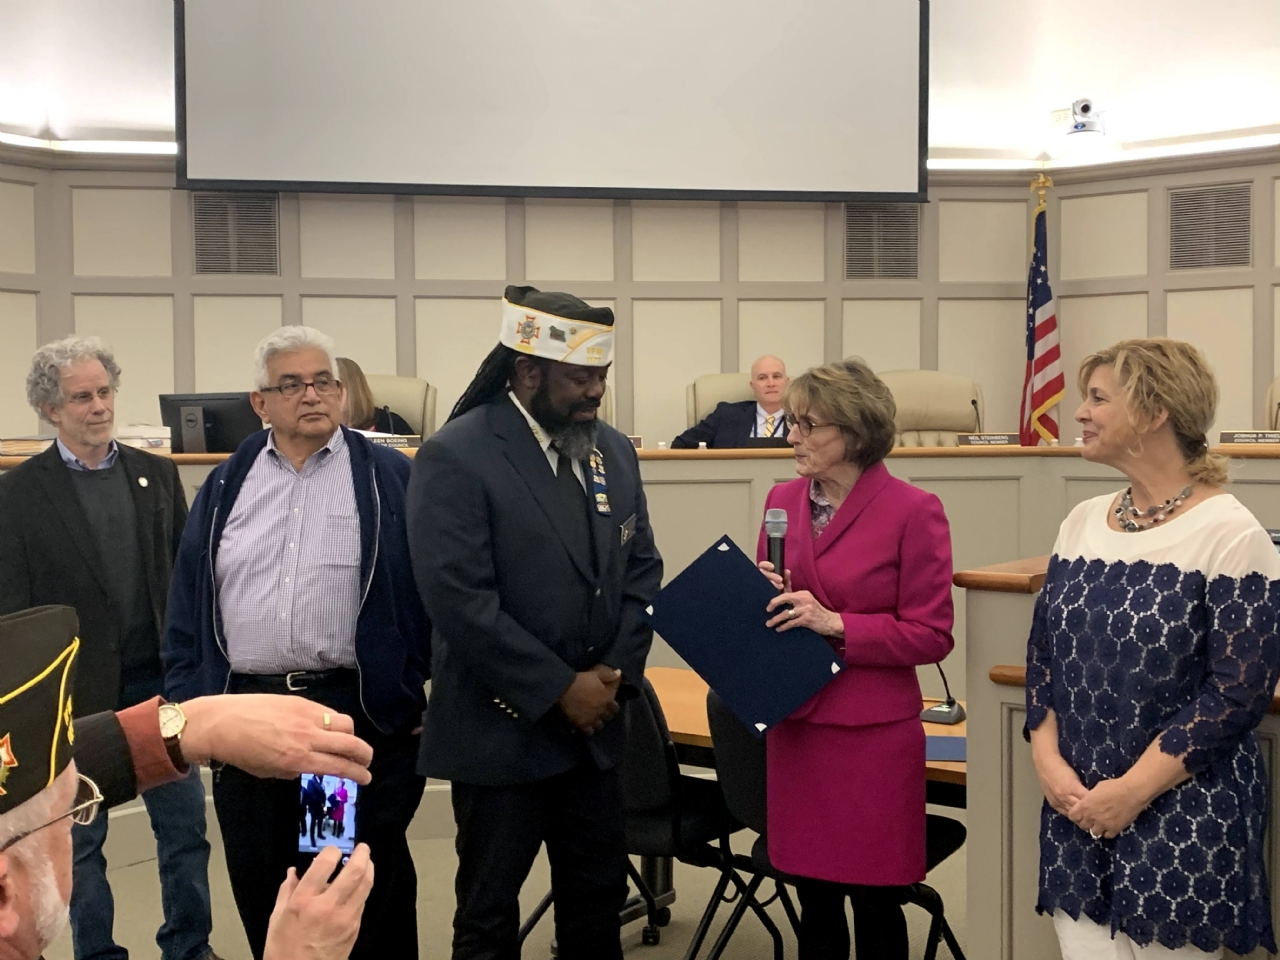 Commander Ray recognized by the Town of Leesburg for his contribution to civic activities and for being the first and only African American of west Indian origin to be post commander of the VFW Post 1177.